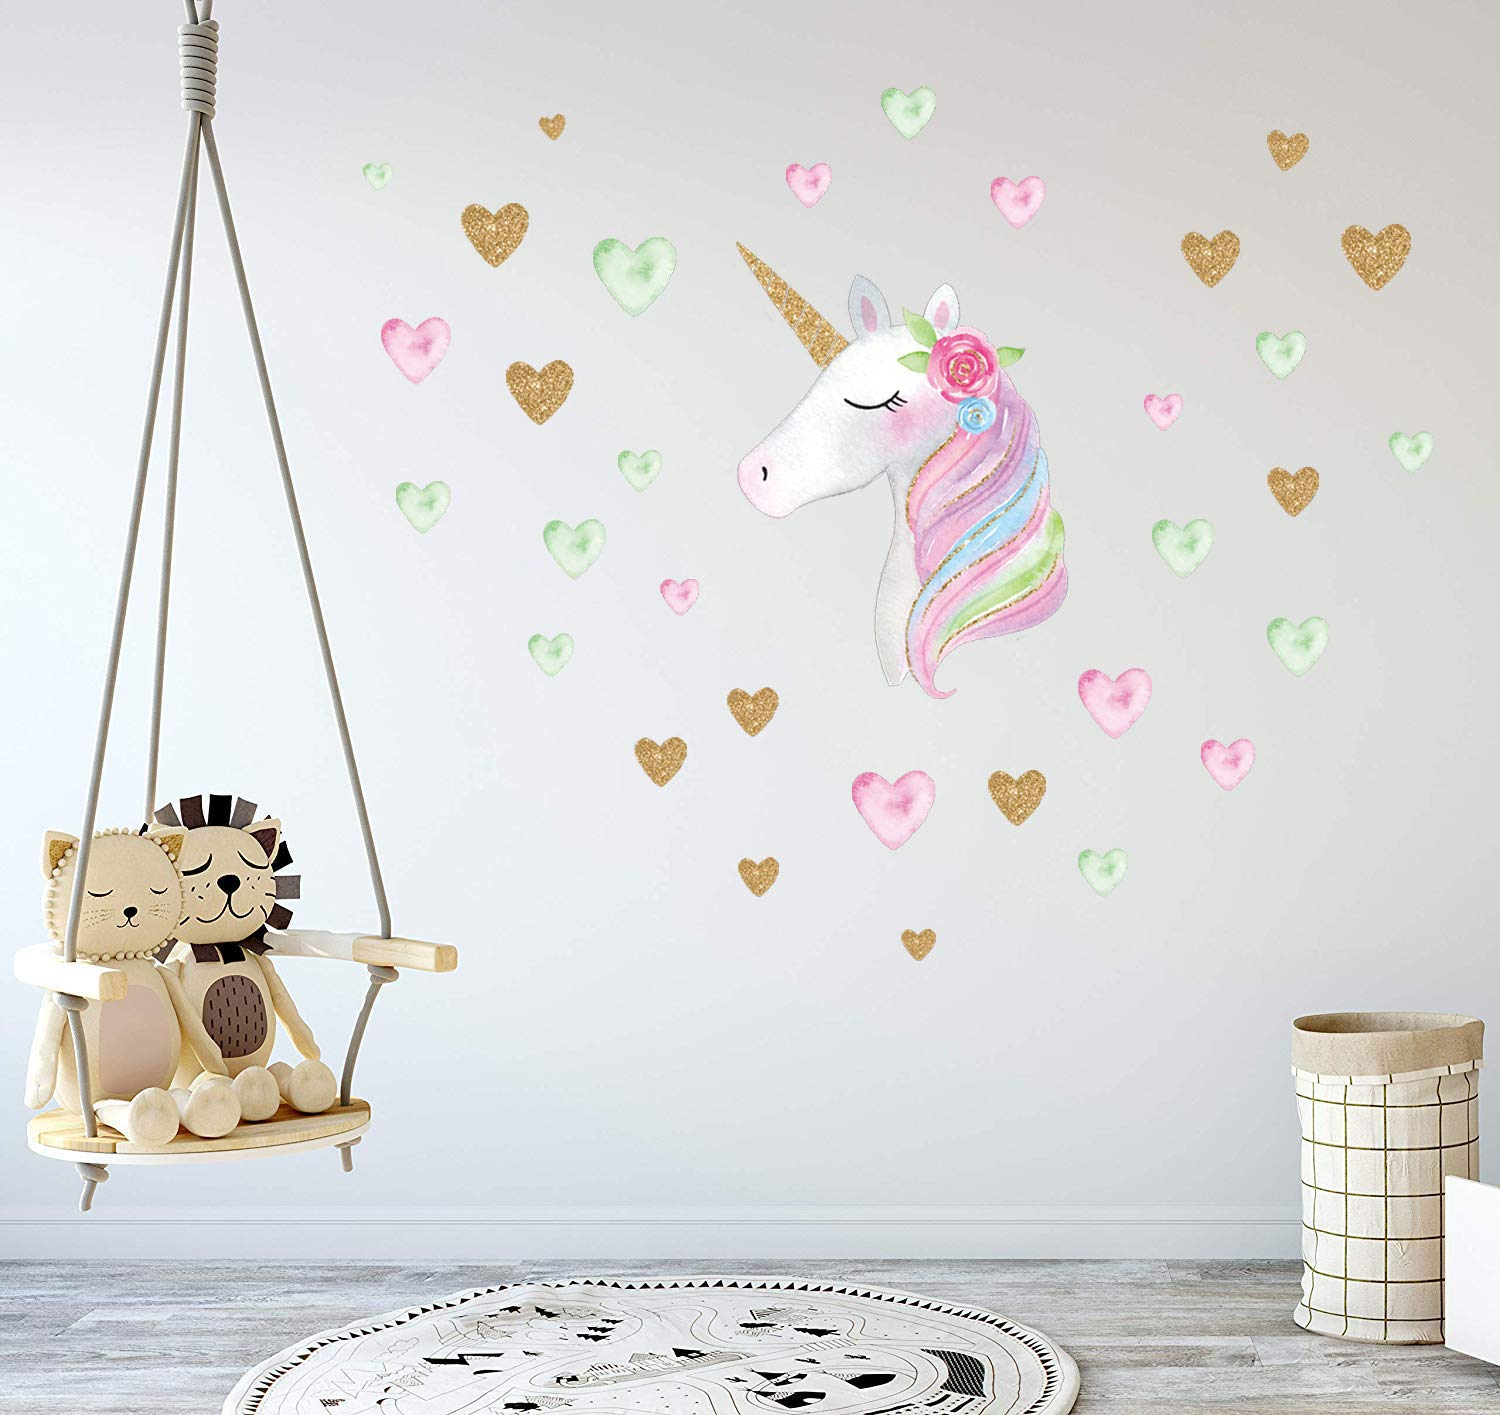 Unicorn Wall Decals,Unicorn Wall Decor Stickers Birthday Gifts for Girls  Kids Bedroom Decor Nursery...